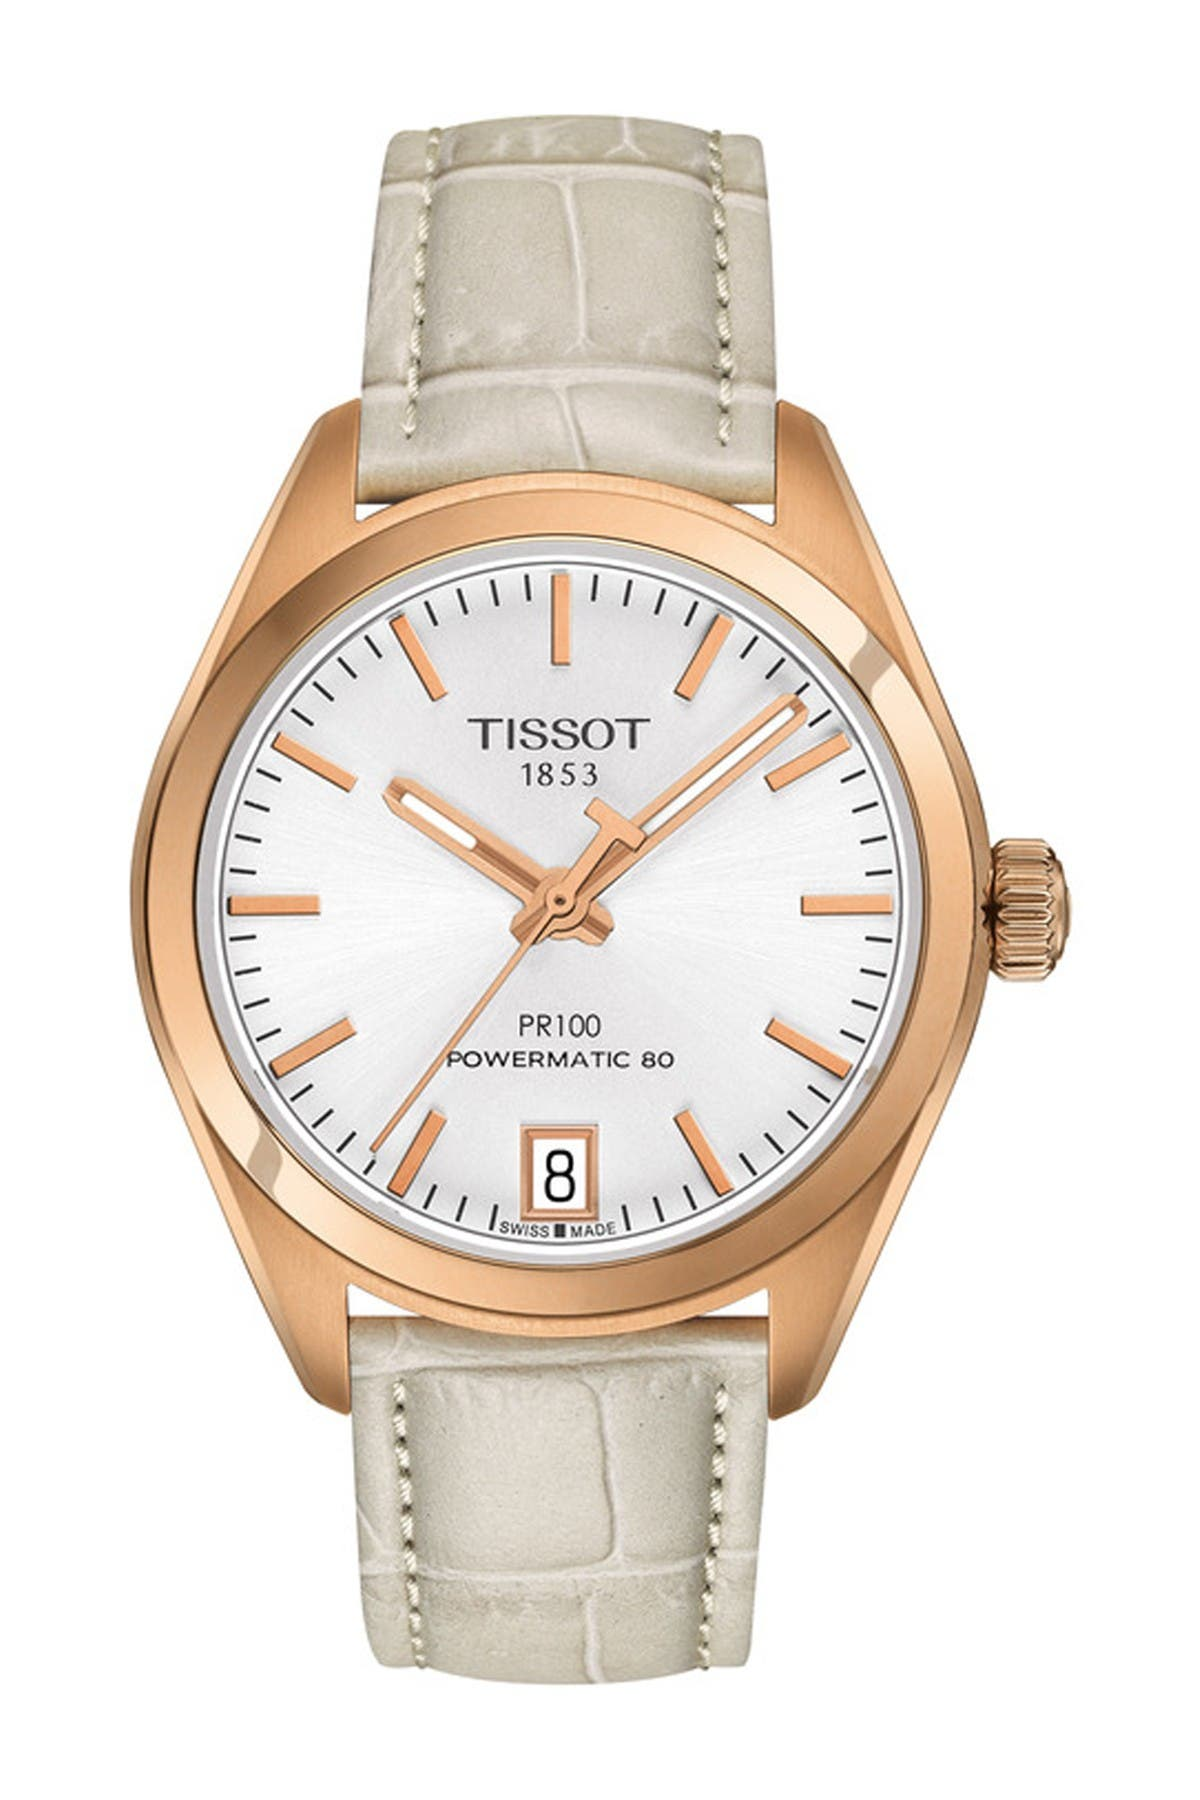 Image of Tissot Women's PR 100 Powermatic 80 Watch, 33mm